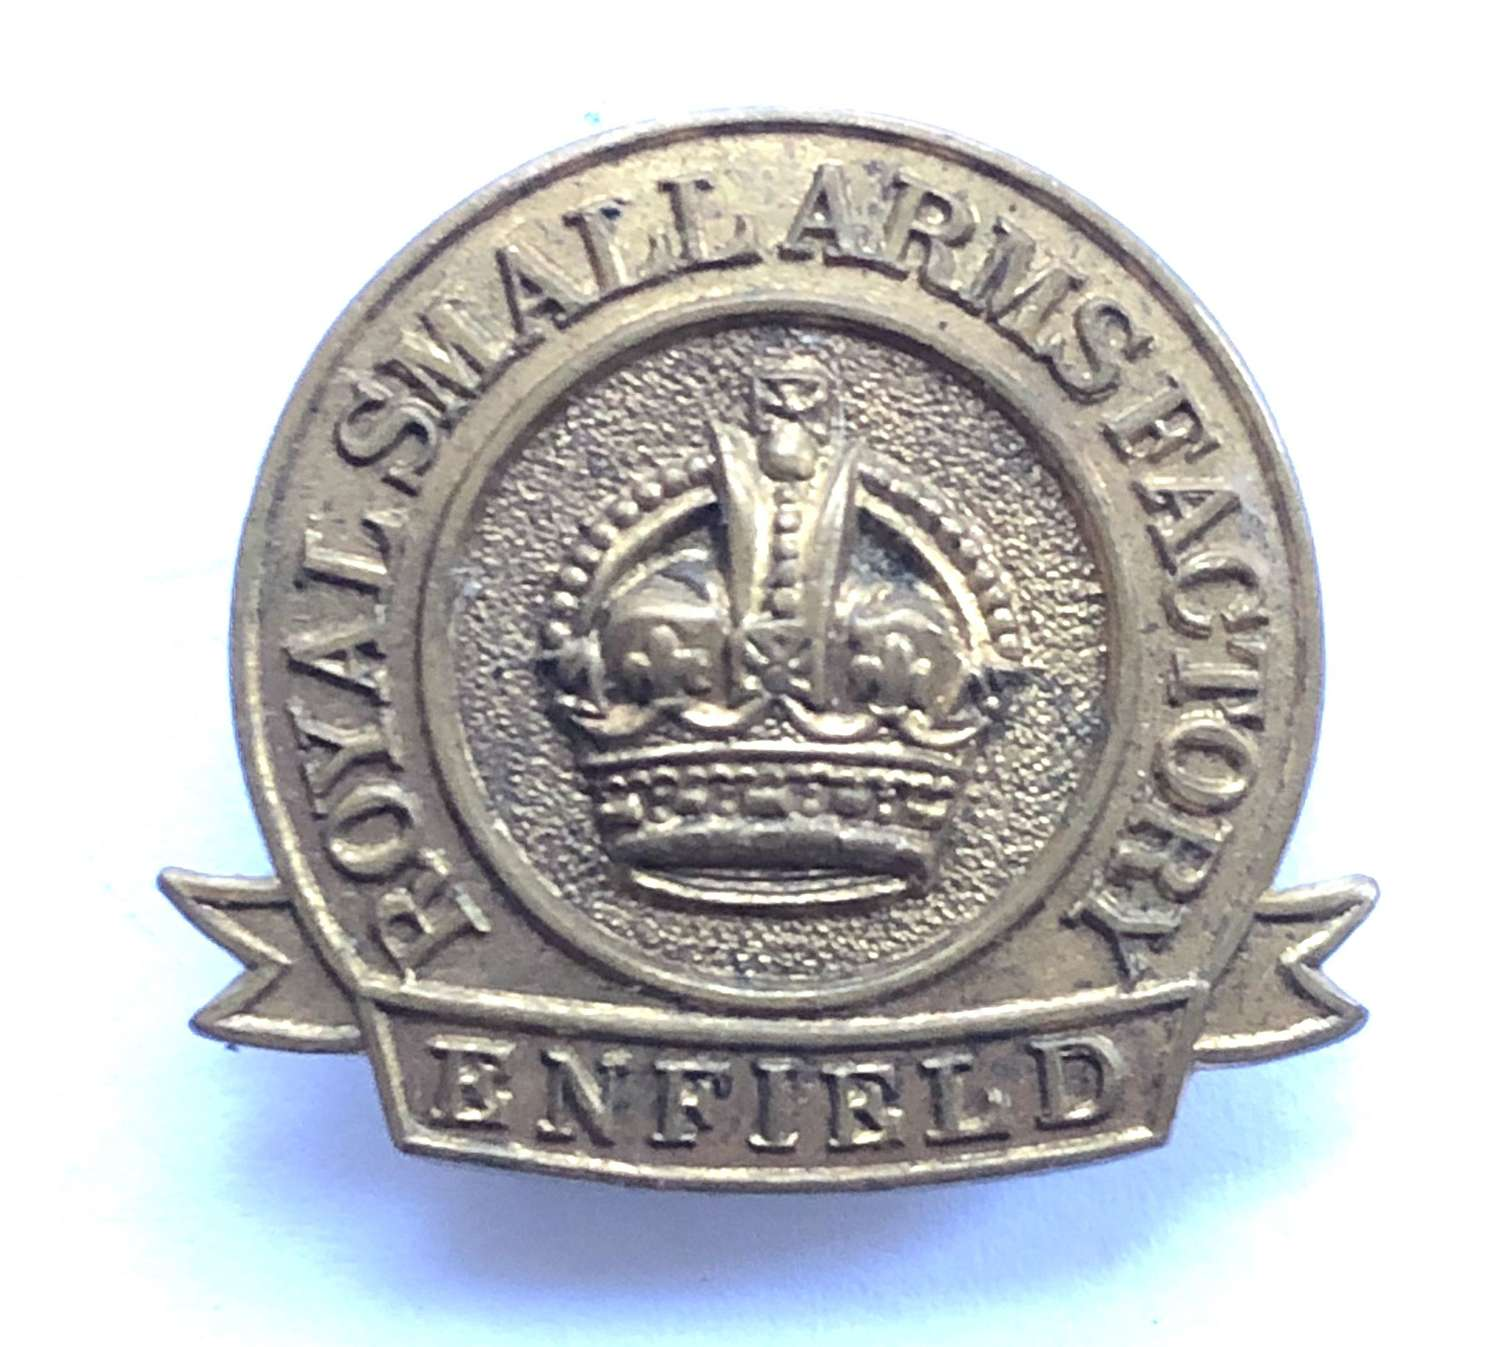 WW2 Royal Small Arms Factory Enfield ROF war worker badge